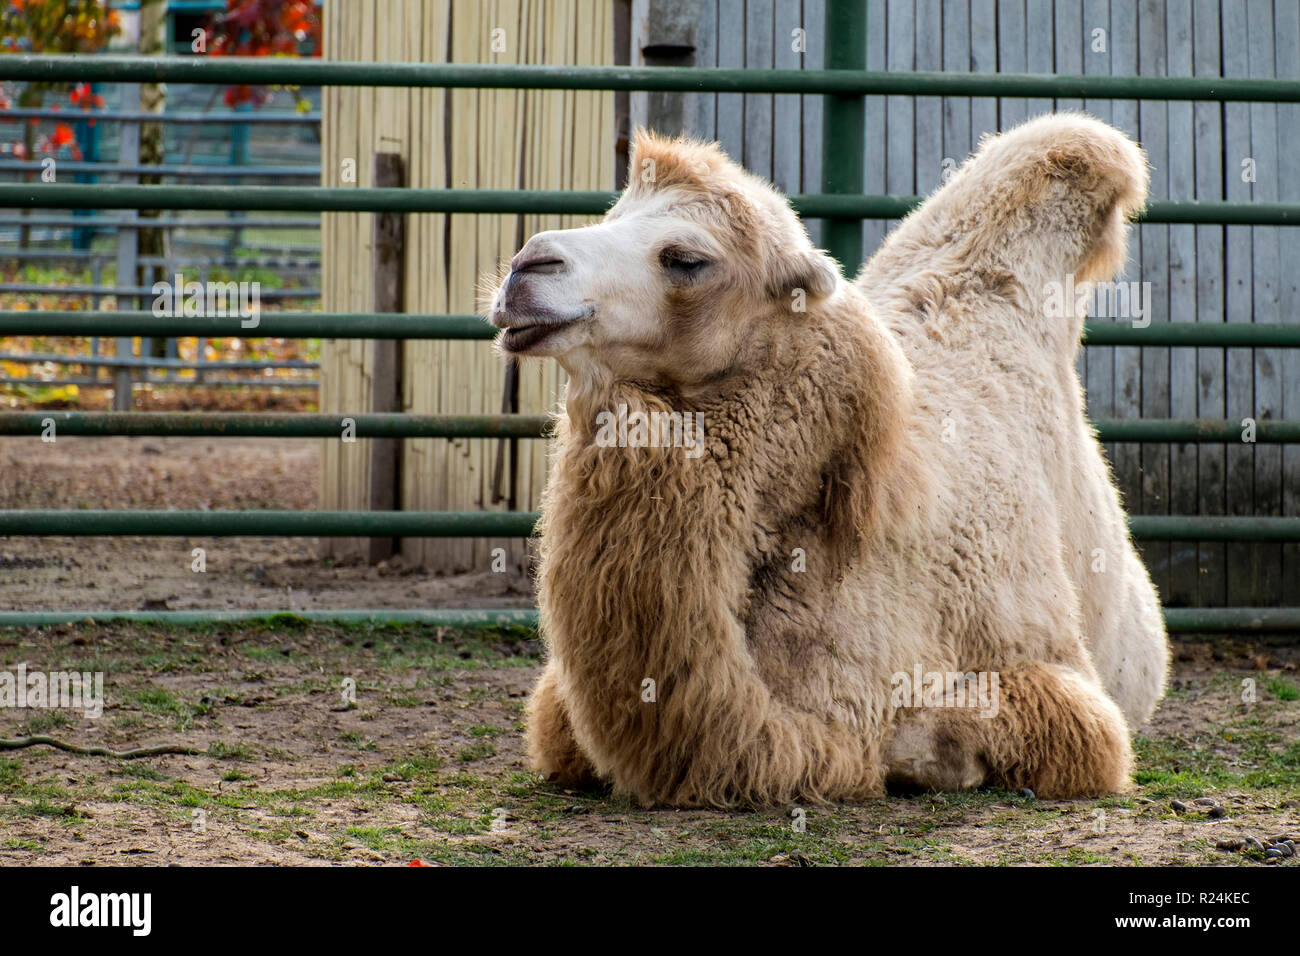 White Bactrian camel resting on the ground (Camelus bactrianus) - Stock Image